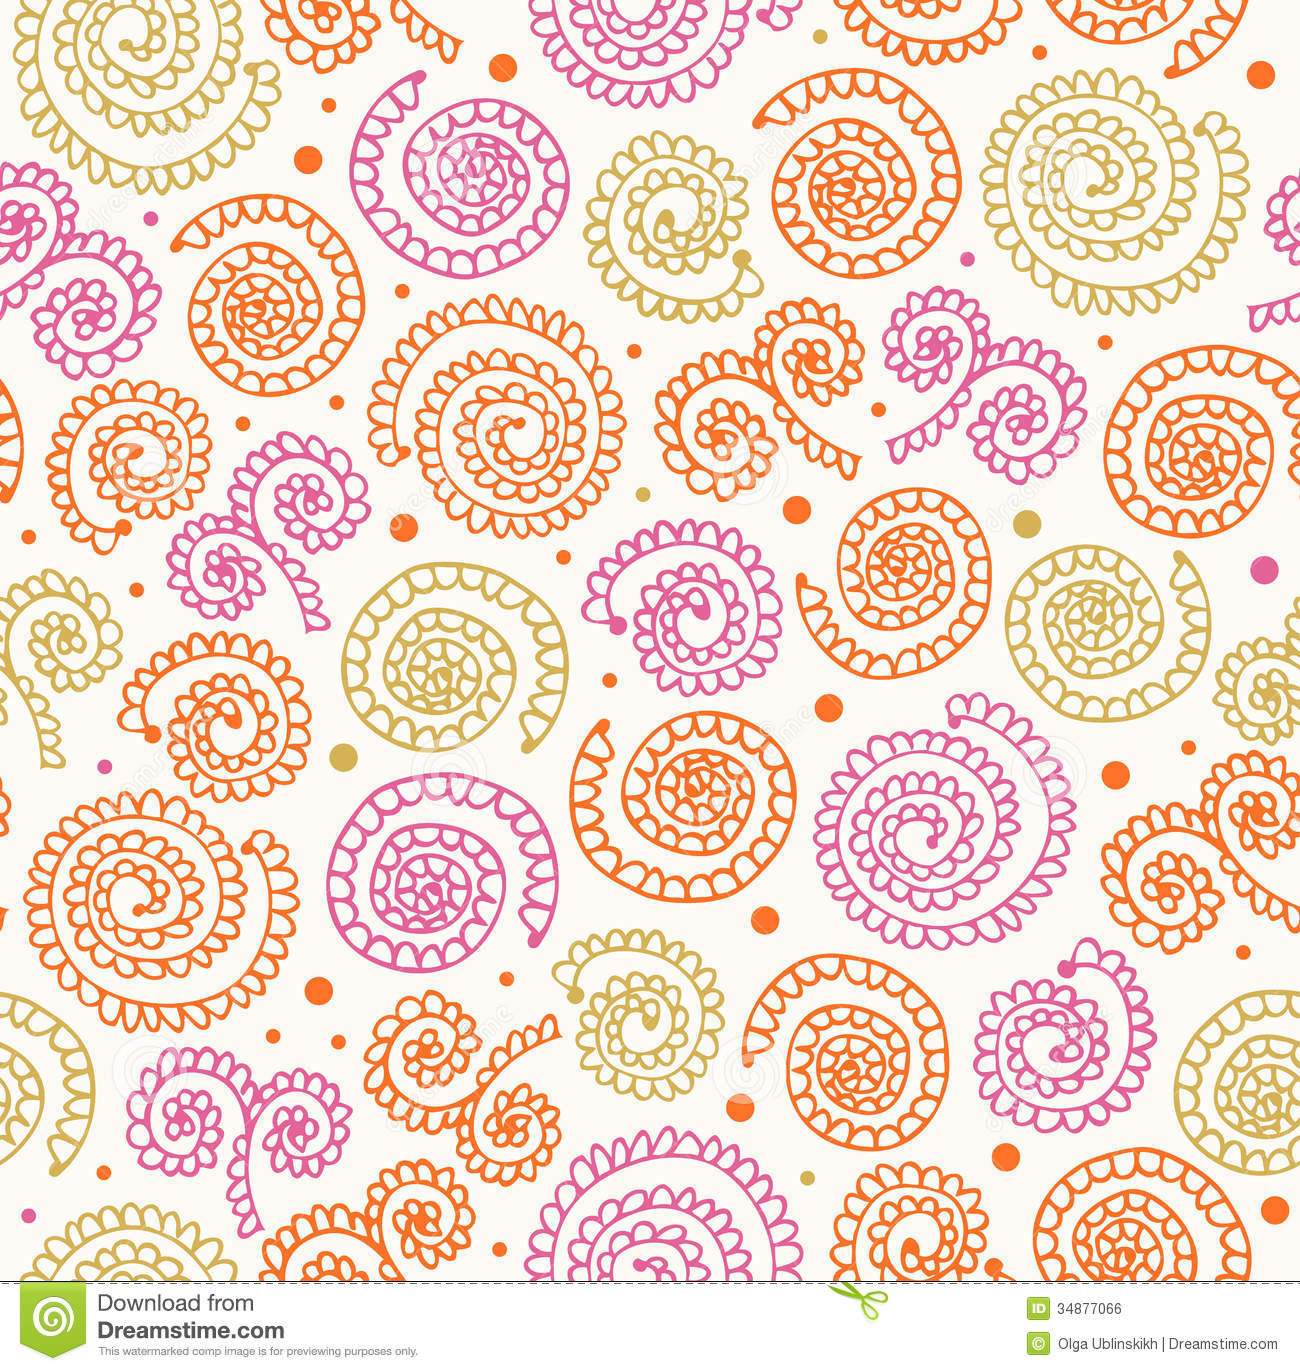 Royalty Free Stock Image: Lacy abstract spiral pattern Seamless doodle ...